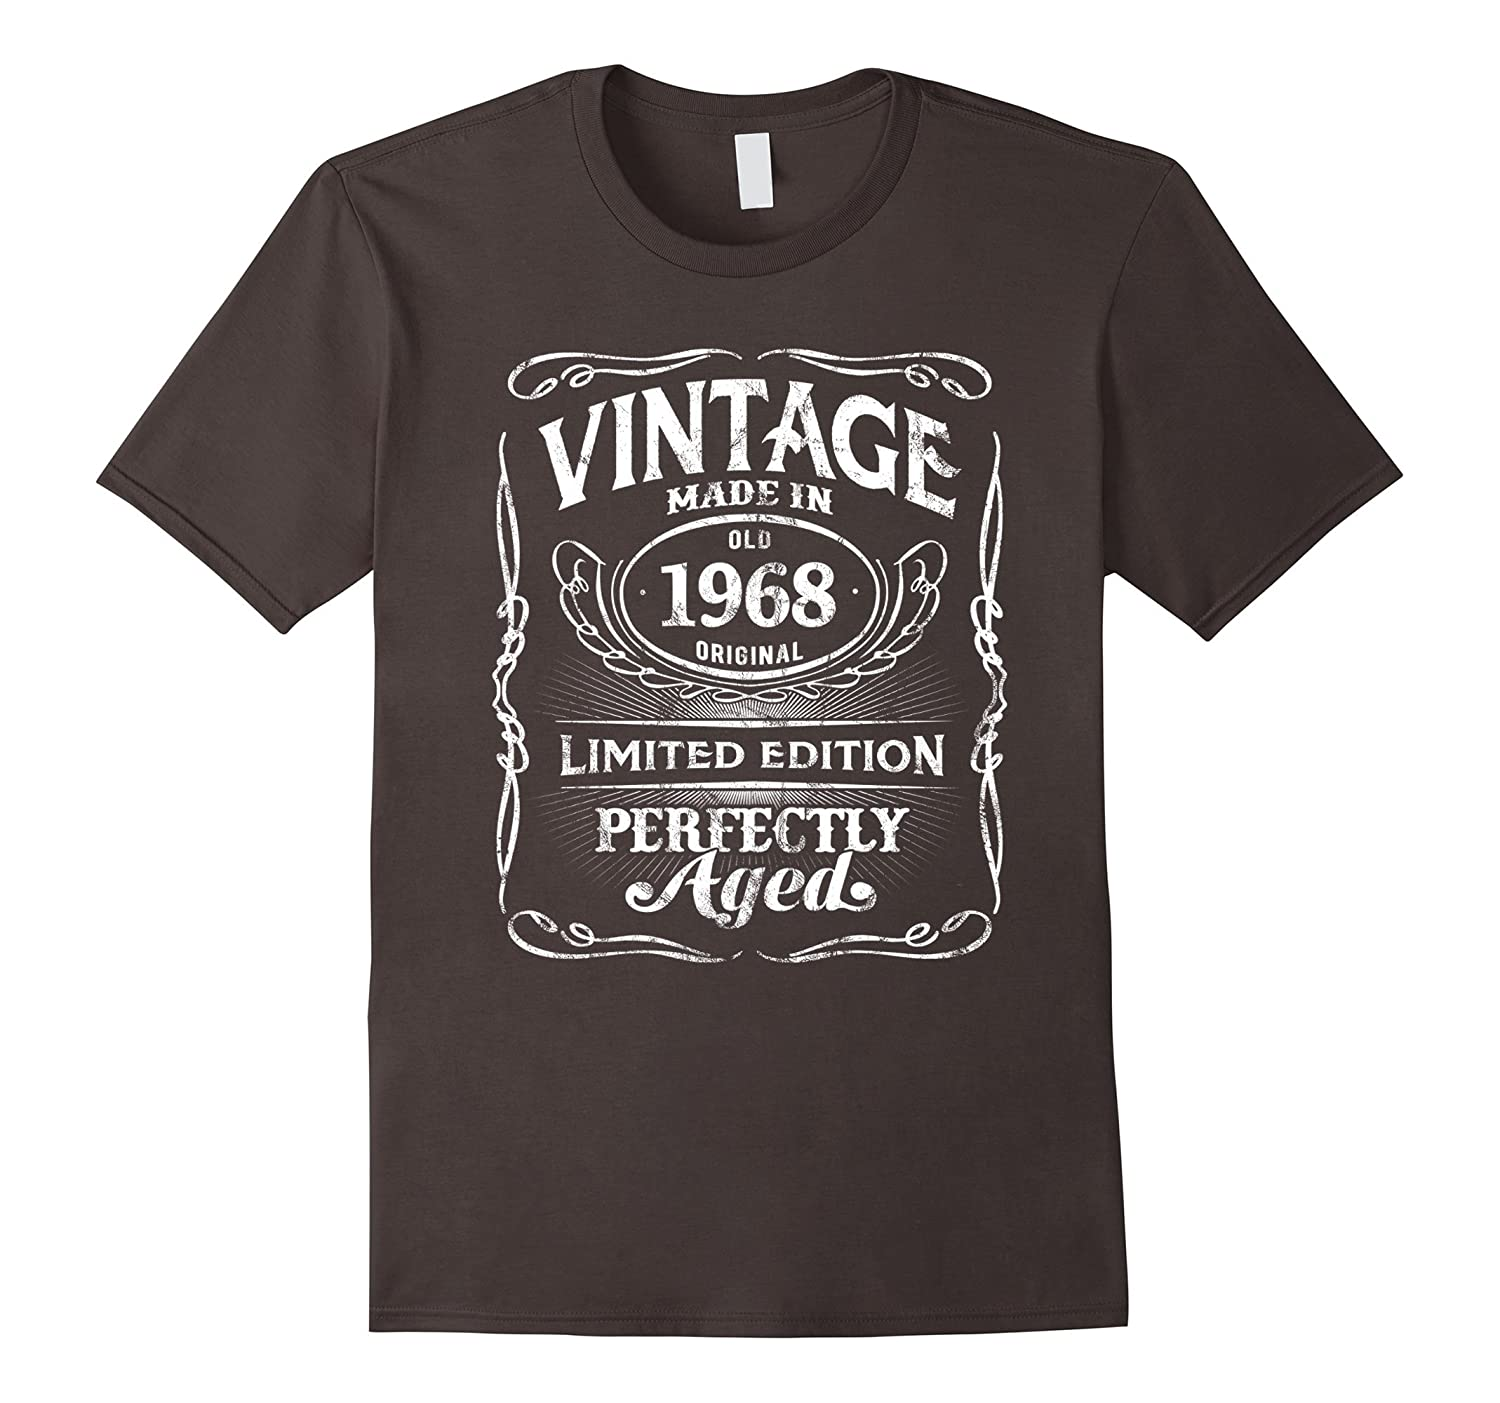 Vintage Premium Made In 1968 T-Shirt 50th Birthday Gift-ah my shirt one gift